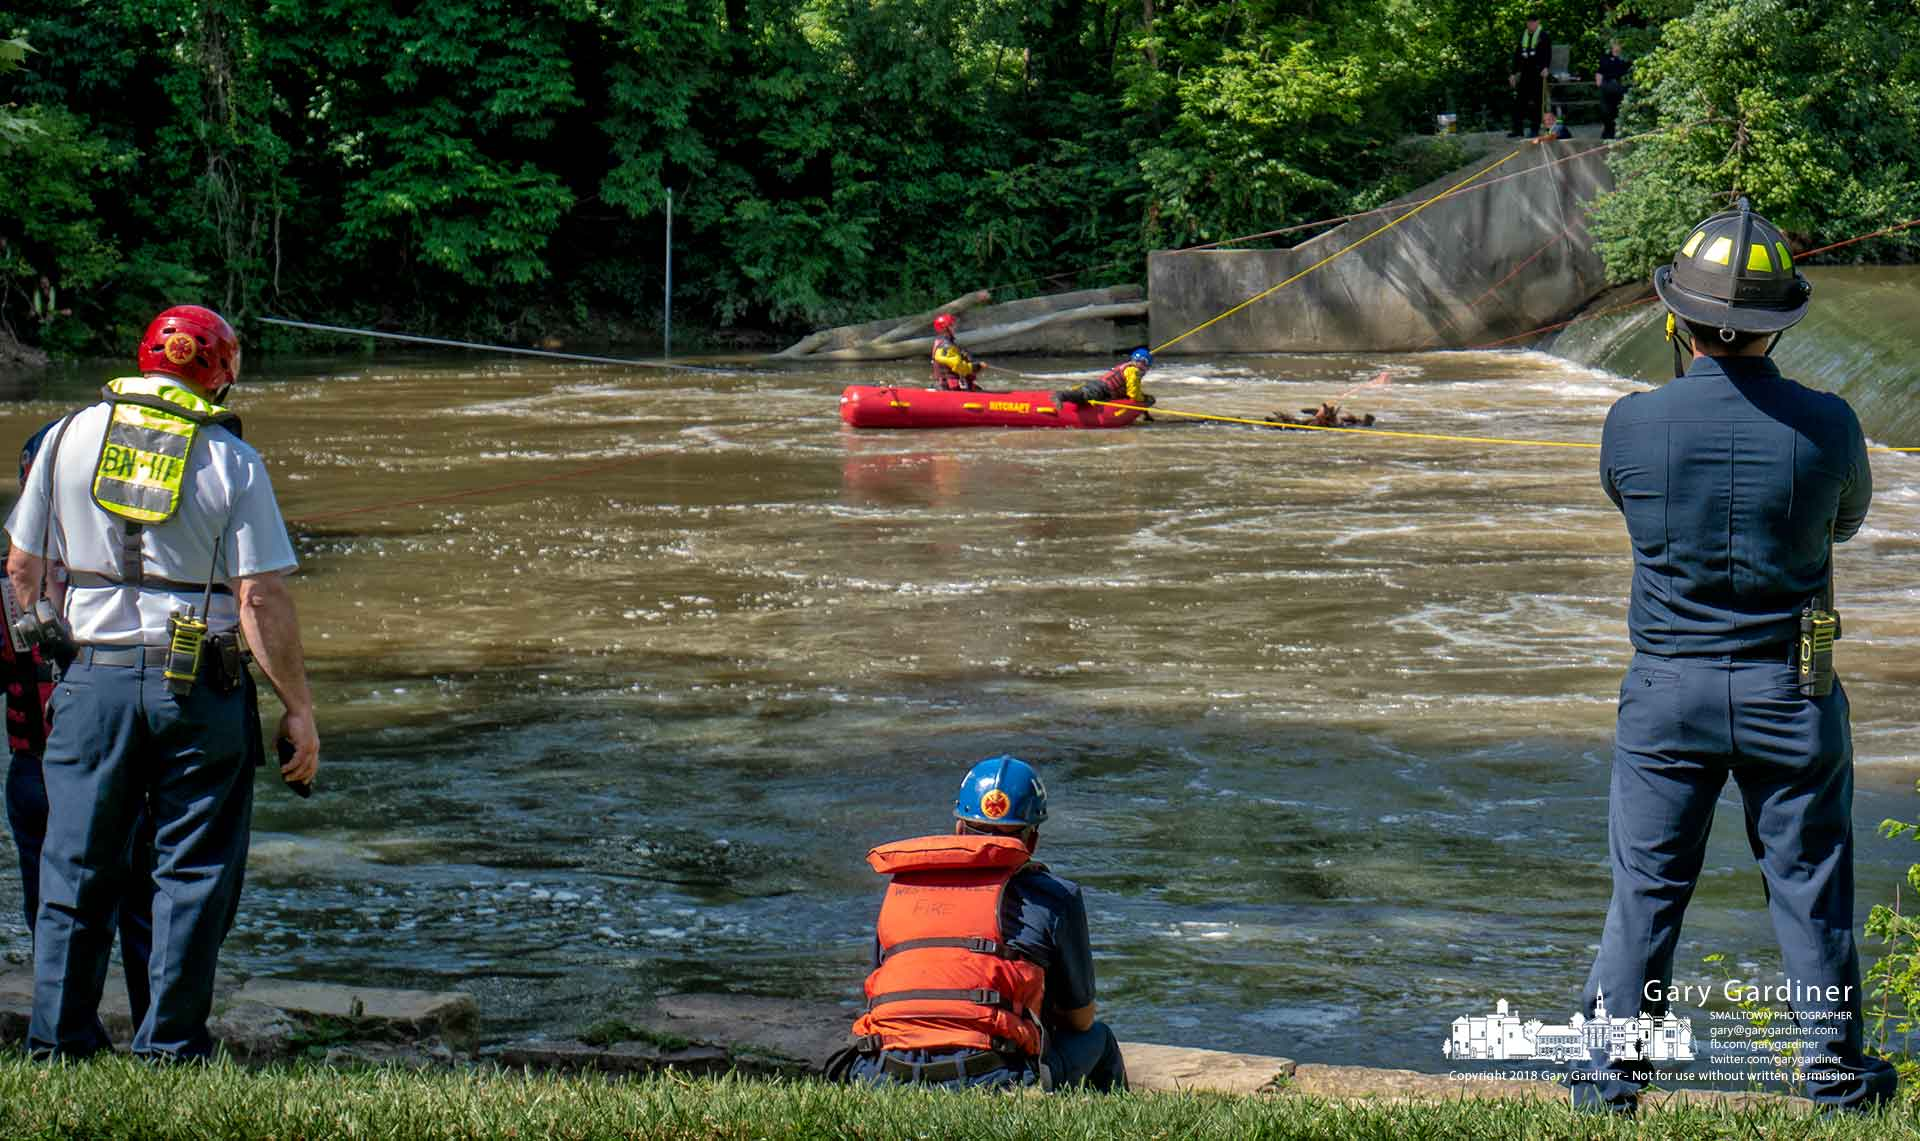 Westerville firefighters train using a new rescue boat deployed in the waters below the Alum Creek low-head dam. My Final Photo for June 25, 2018.